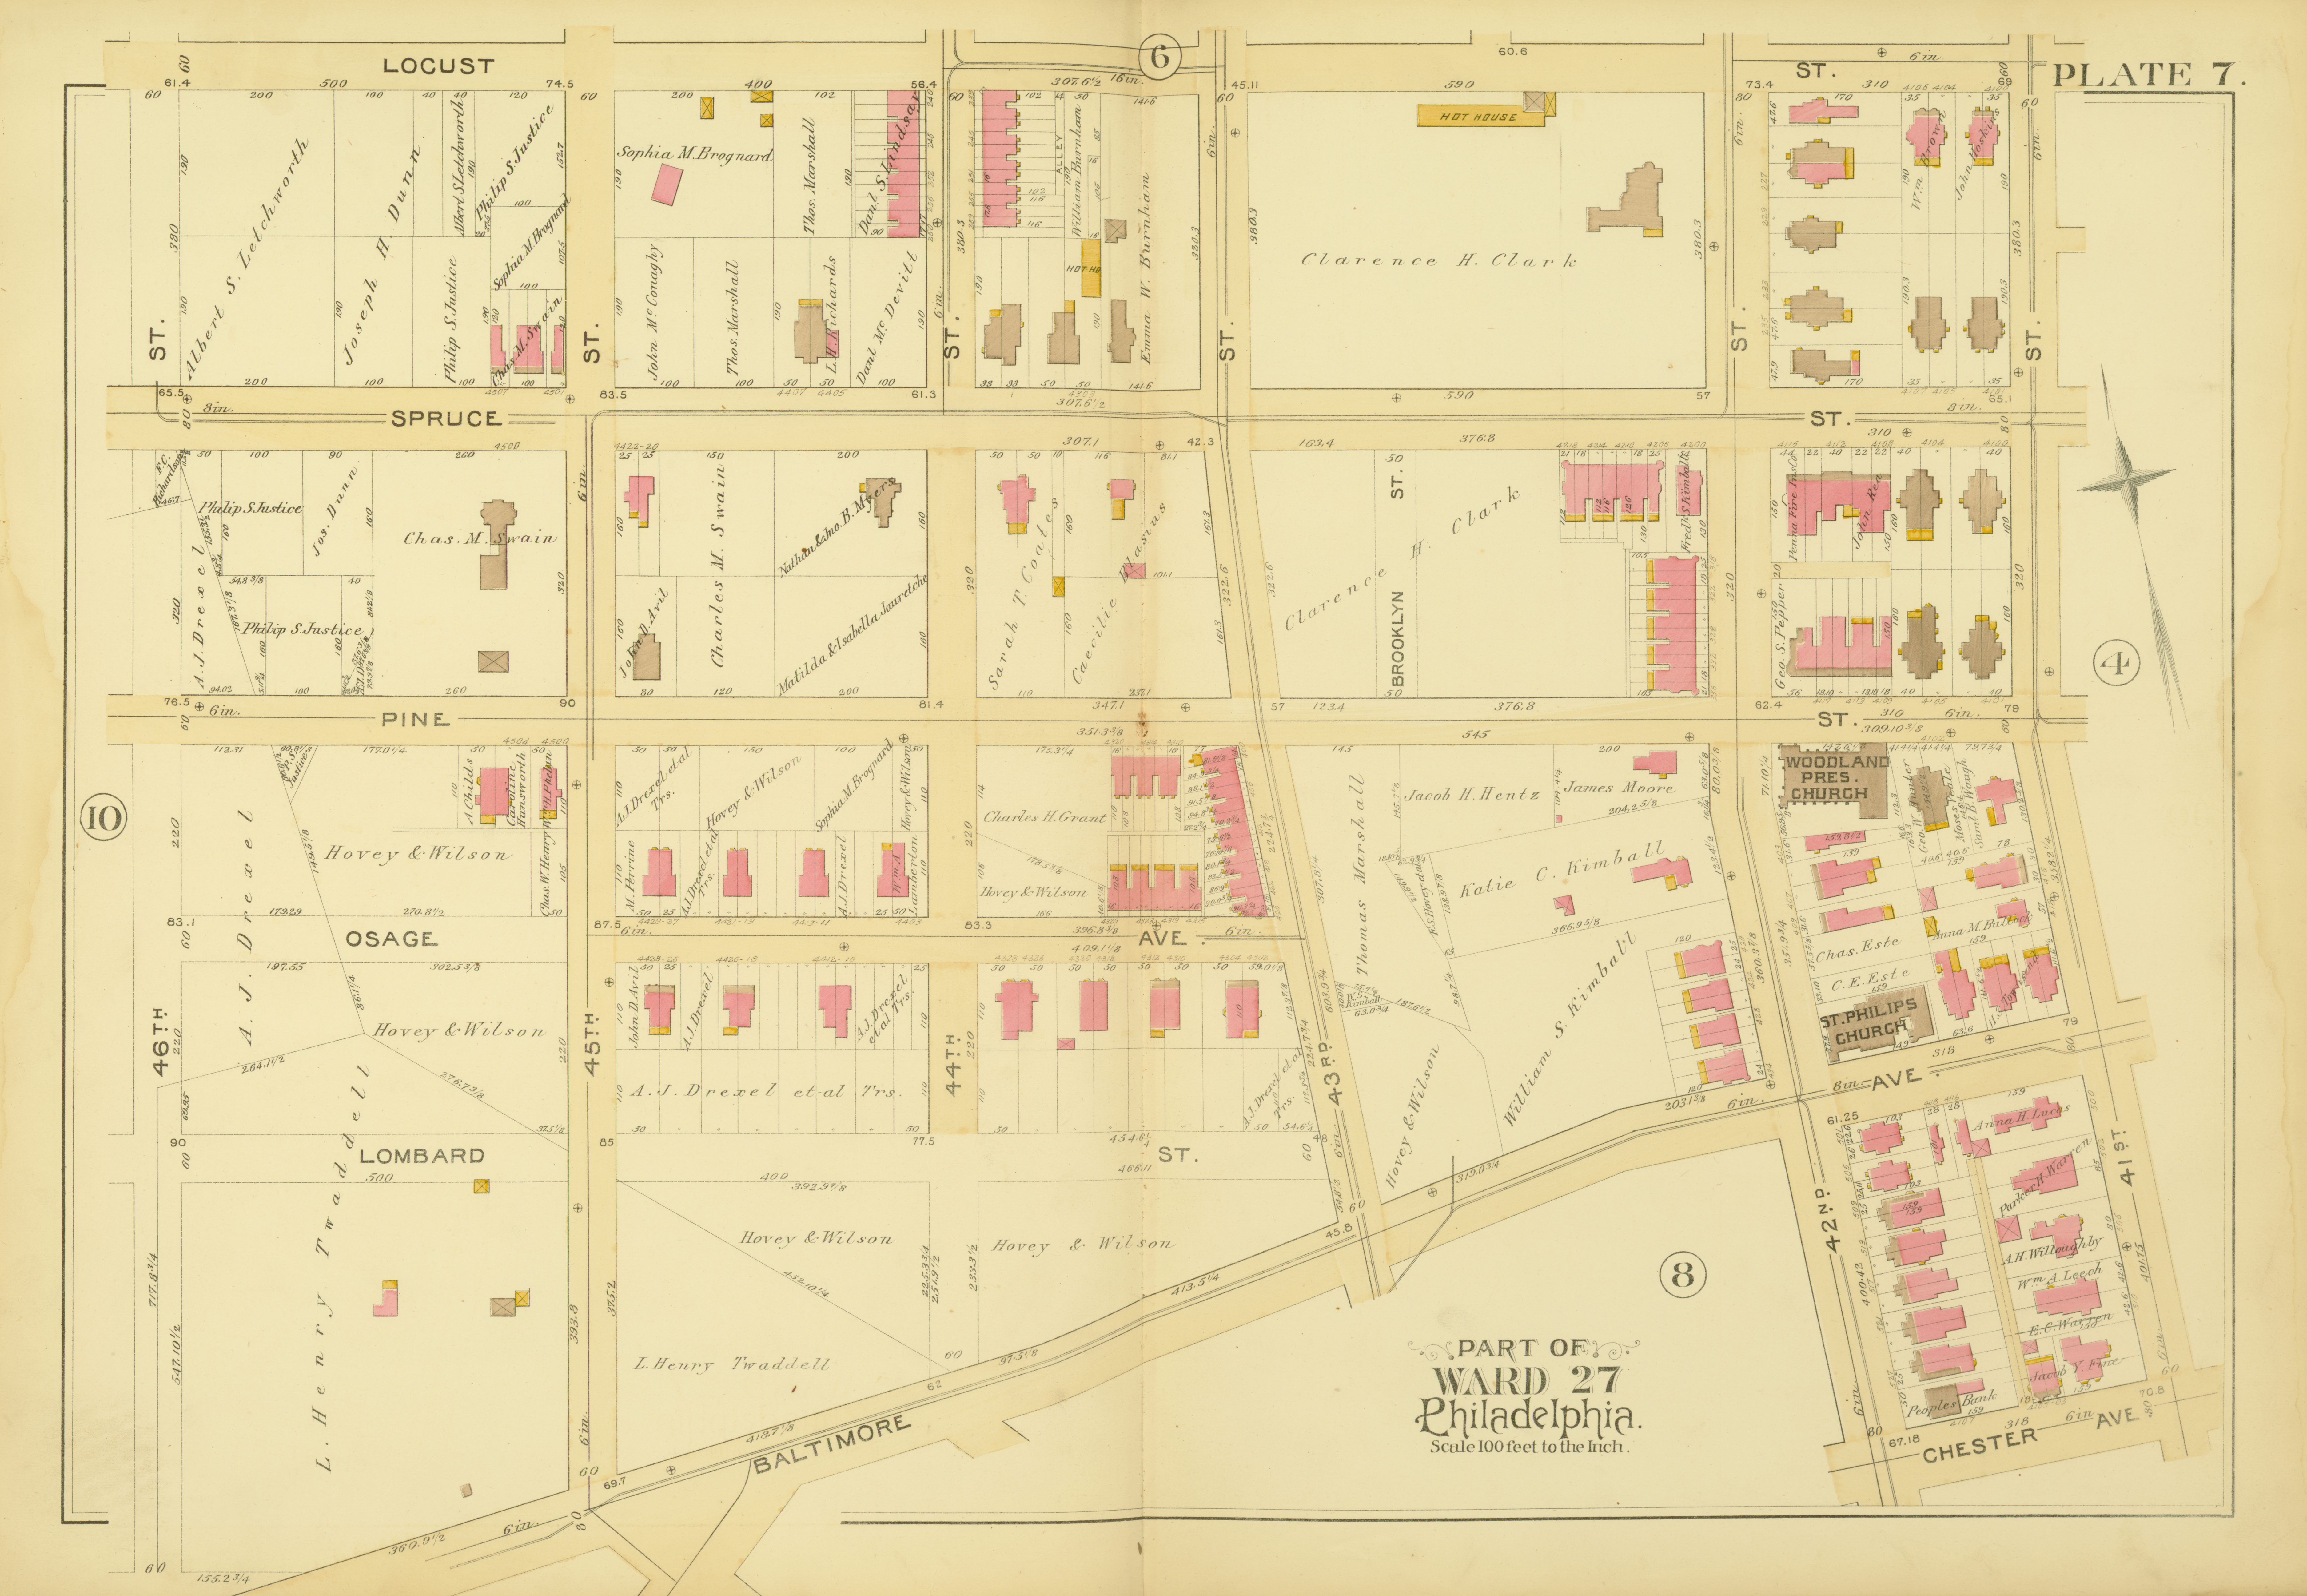 1892 Atlas of the 27th Ward, West Philadelphia - Plate 7